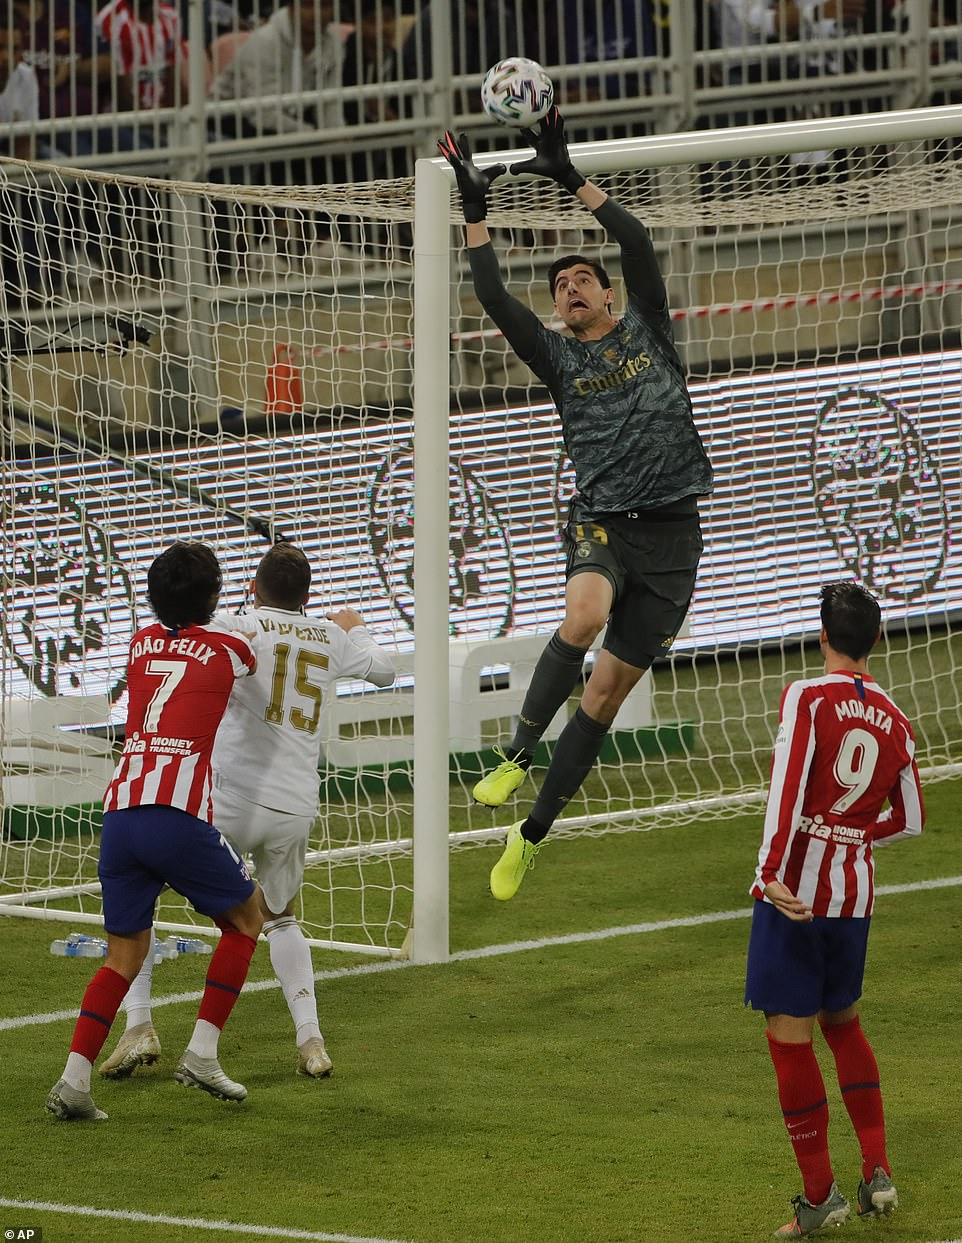 Real Madrid goalkeeper Thibaut Courtois goes up to catch the ball as he arrives towards his net from an Atletico Madrid shot